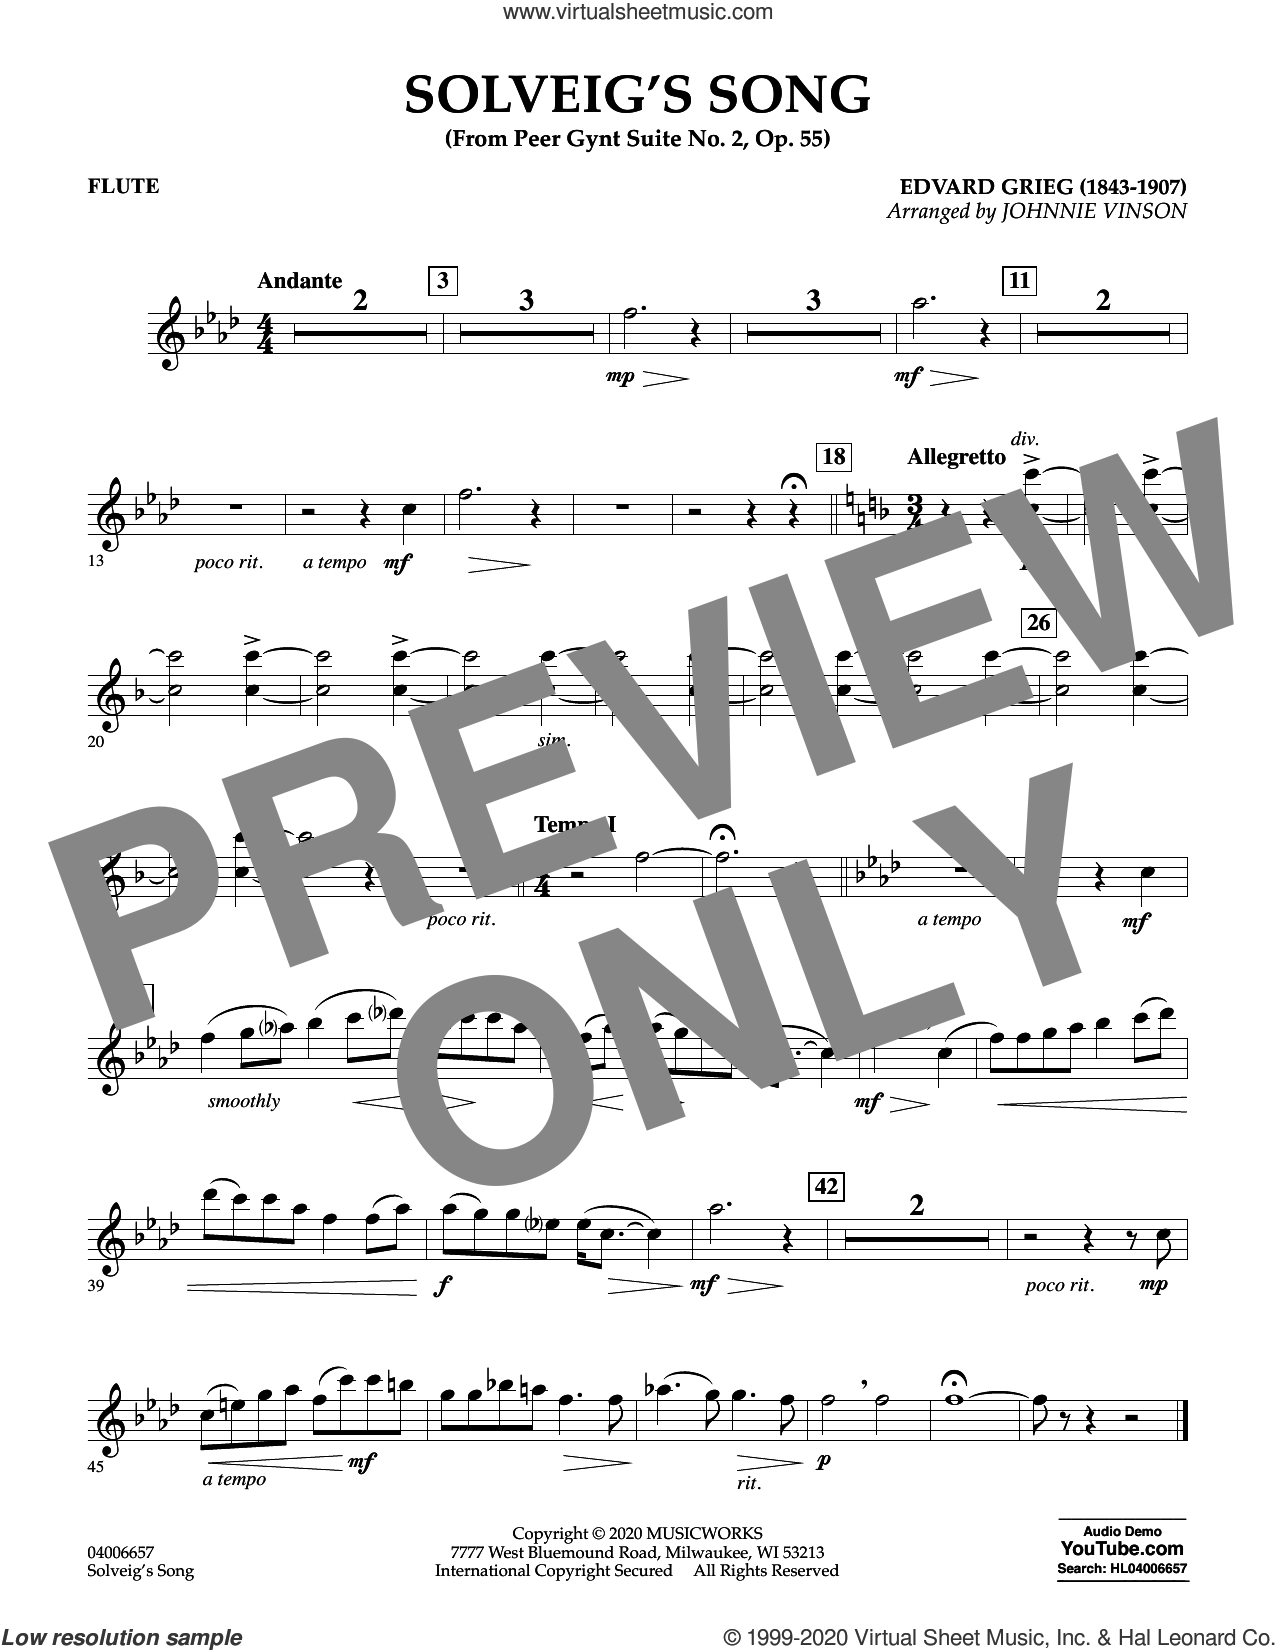 Solveig's Song (from Peer Gynt Suite No. 2) (arr. Johnny Vinson) sheet music for concert band (flute) by Edvard Grieg, Johnnie Vinson and Henrick Ibssen, intermediate skill level